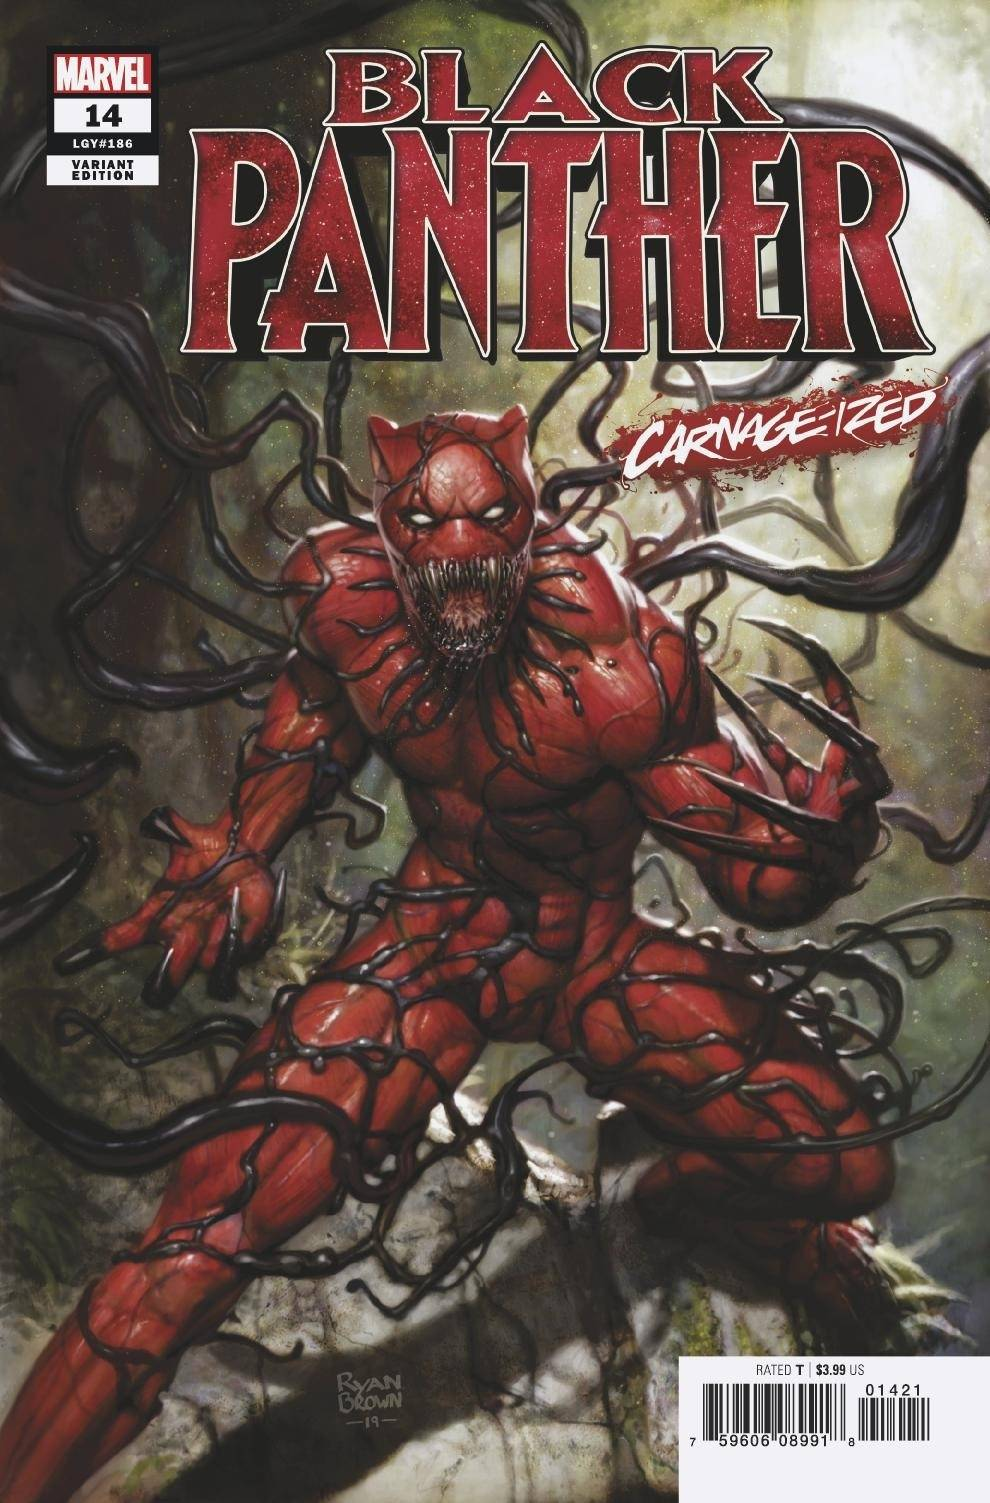 BLACK PANTHER #14 BROWN CARNAGE-IZED VAR